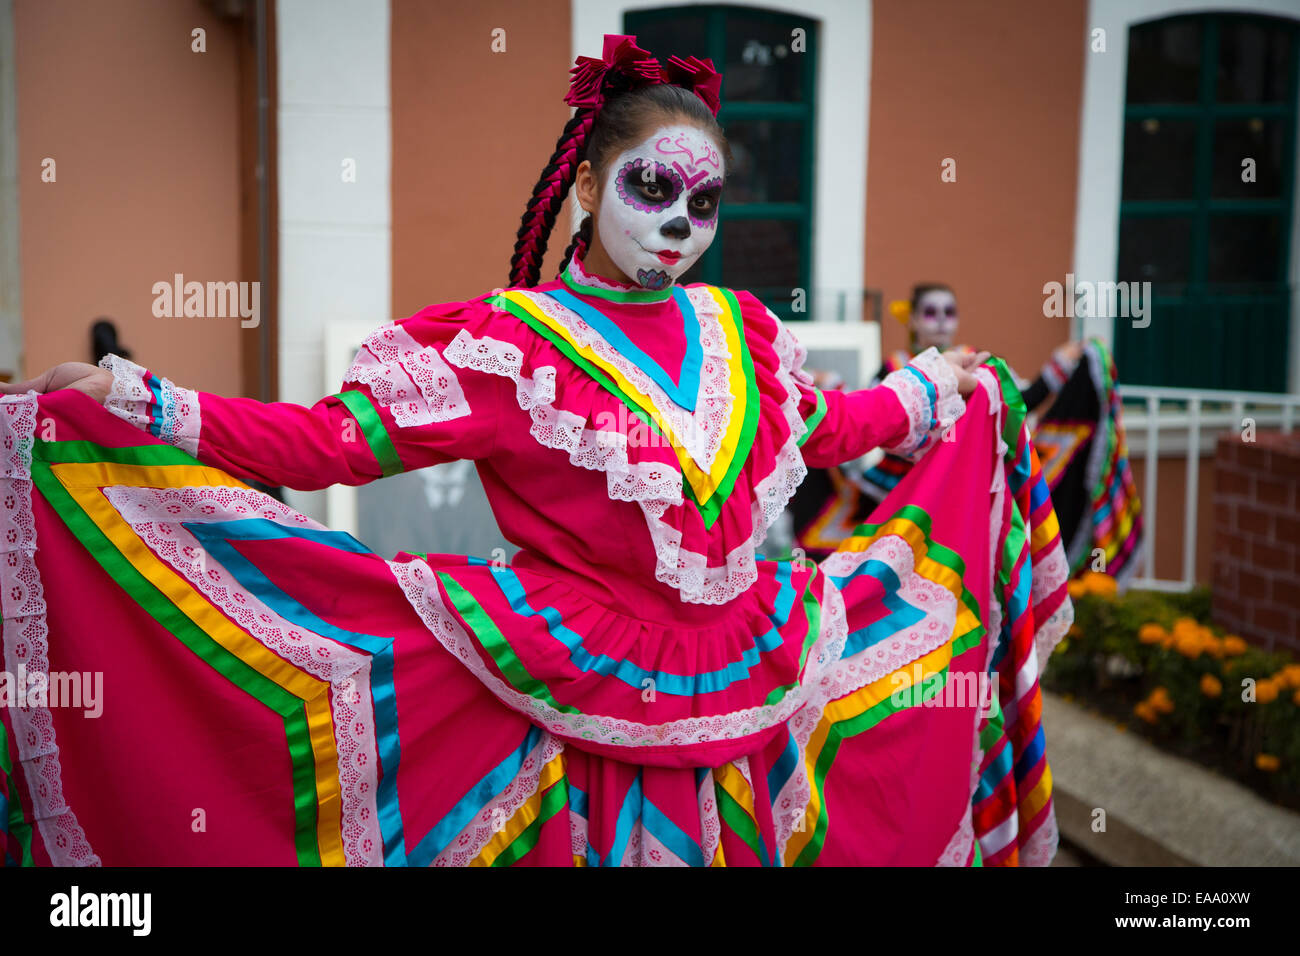 A dancer in Real del Monte, Mexico at the annual 'Day of the Dead' celebrations held on All Souls day. - Stock Image